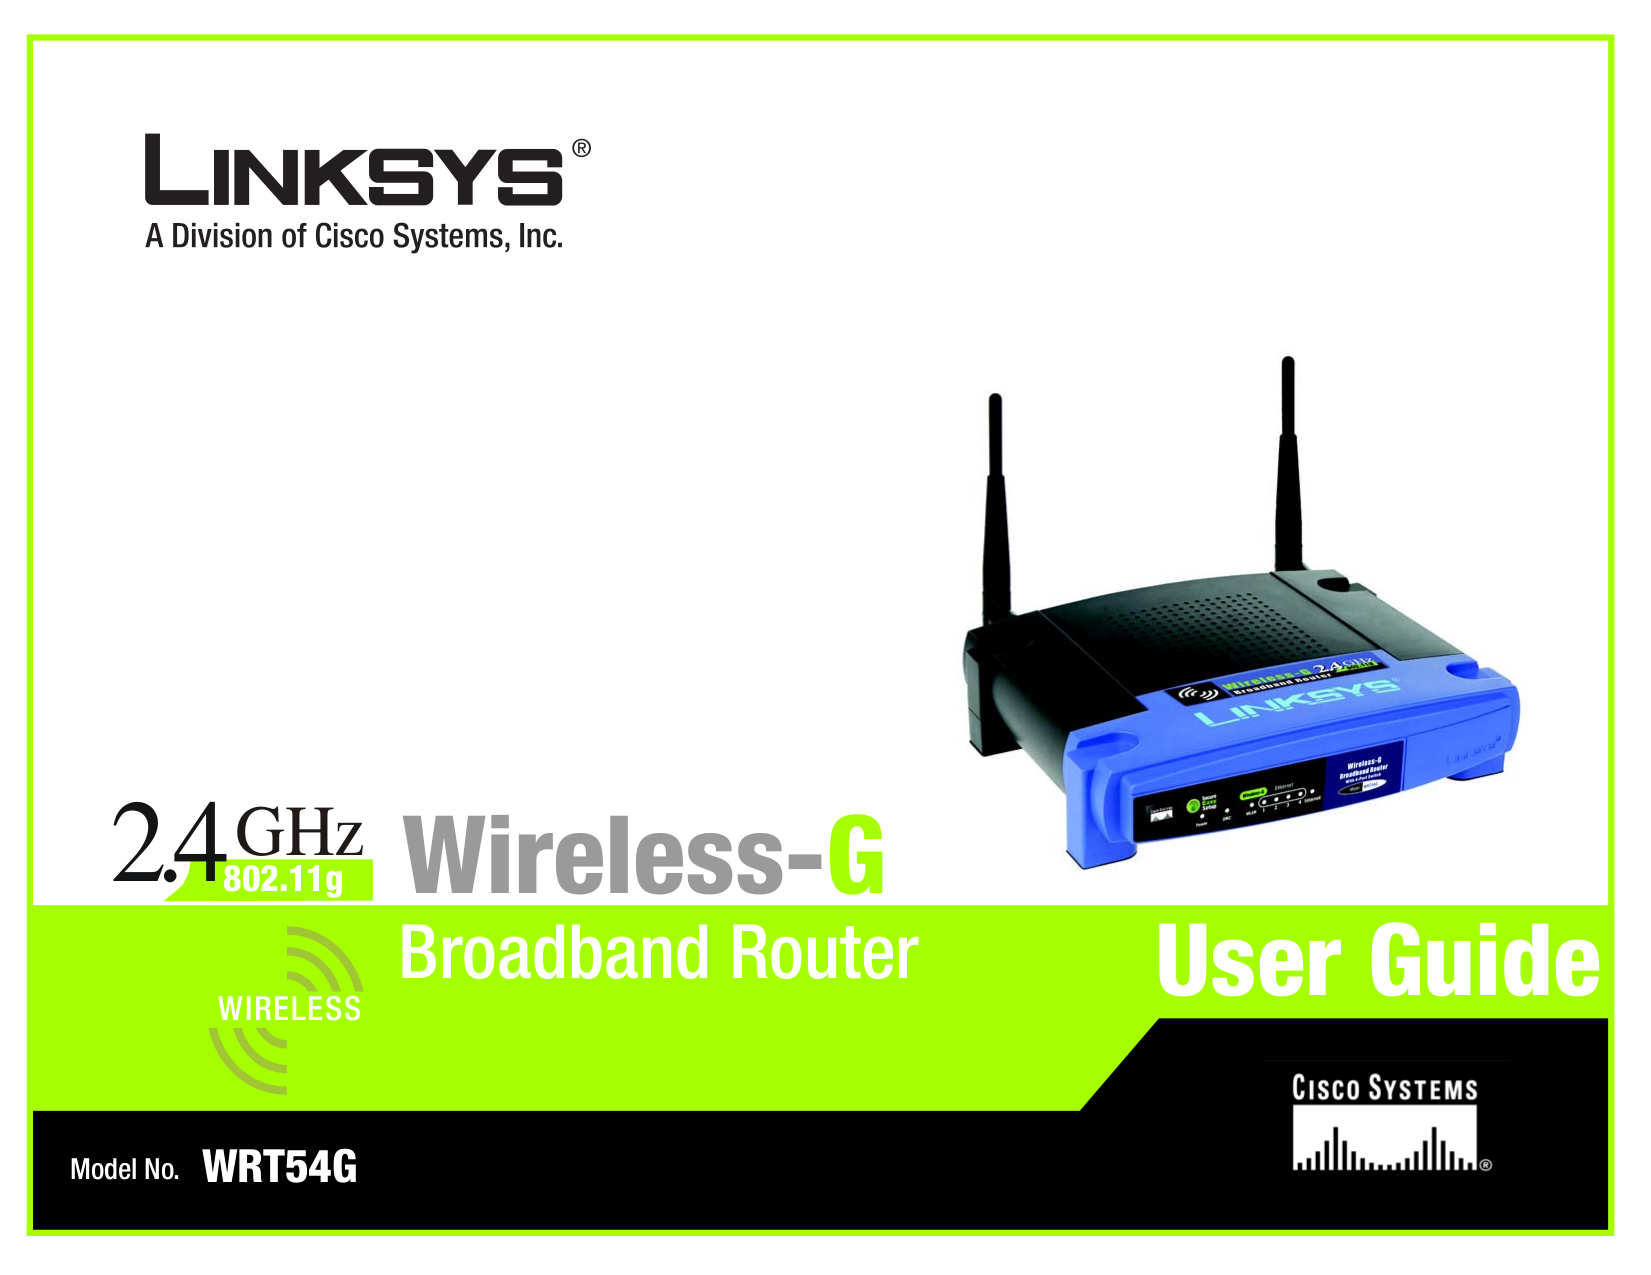 wrt54g driver user guide daily instruction manual guides u2022 rh testingwordpress co linksys router manual wrt54g2 linksys router wrt54g2 manual pdf